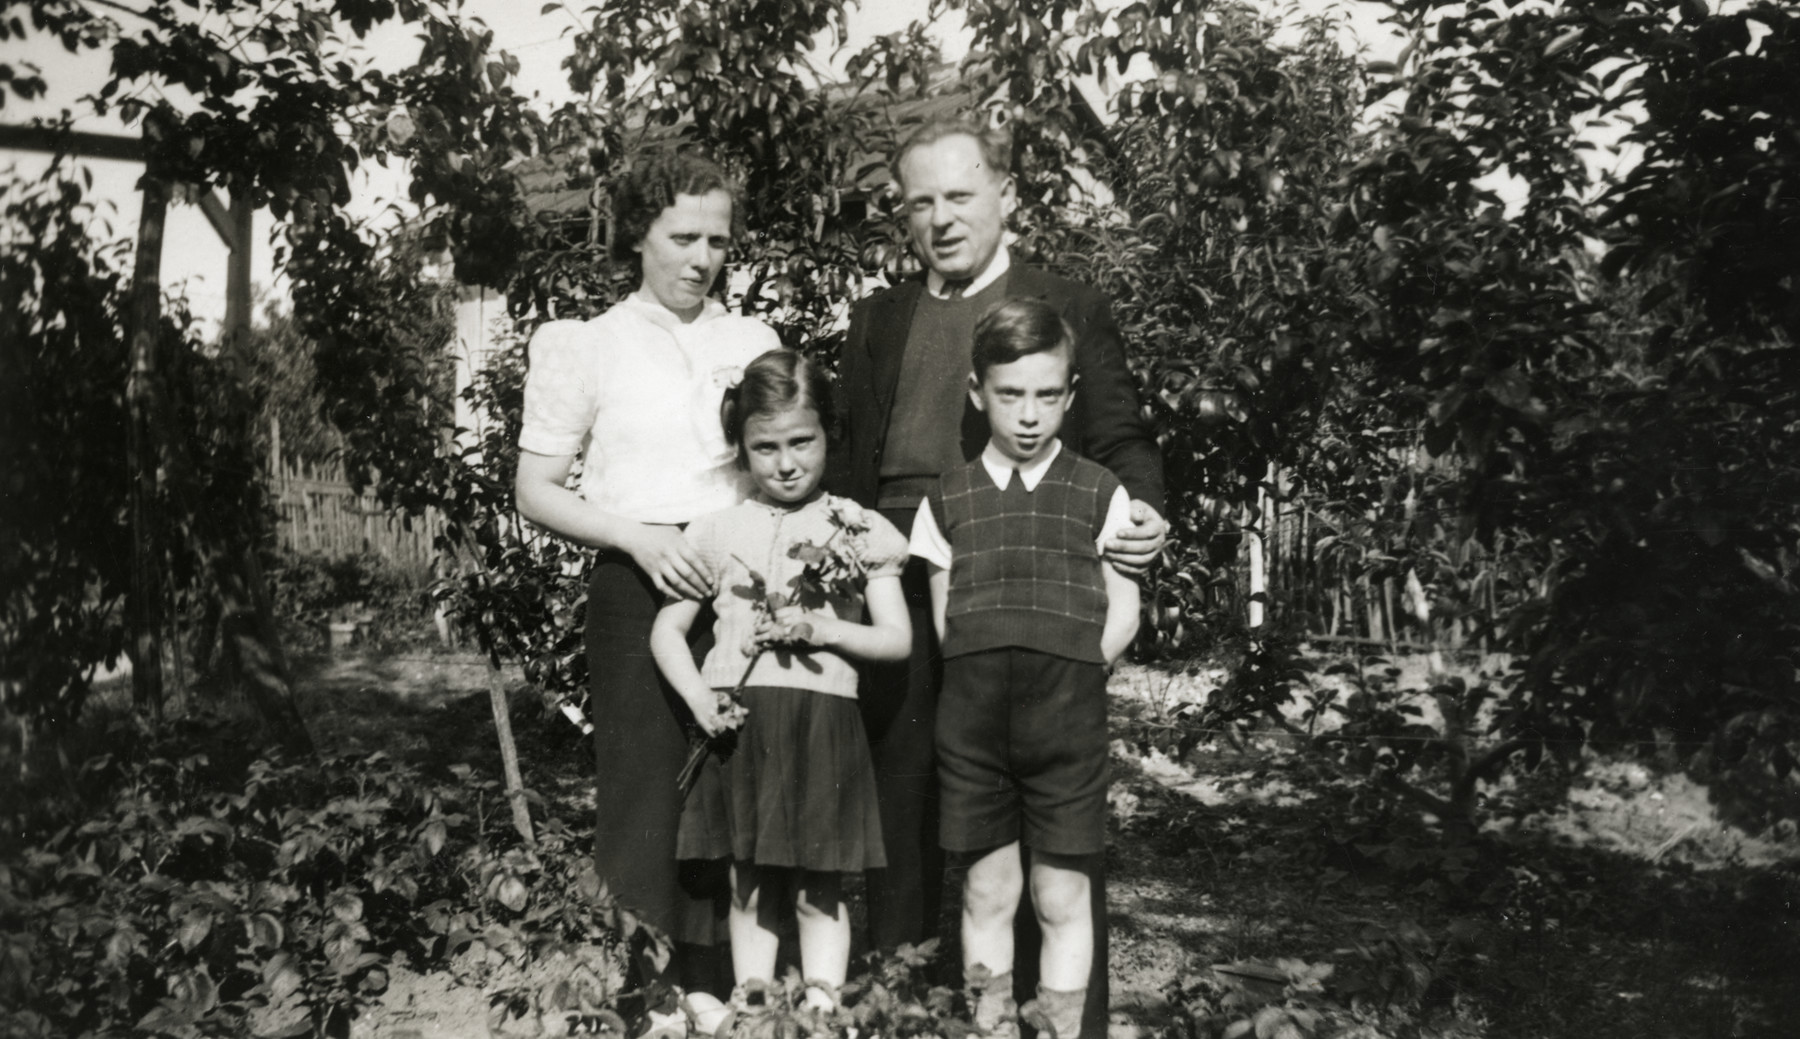 A Jewish family poses in the yard next to their home (possibly in Gagny).  Pictured are Rivka and Hersh Jakubovitch, with their children Fernande and Albert.